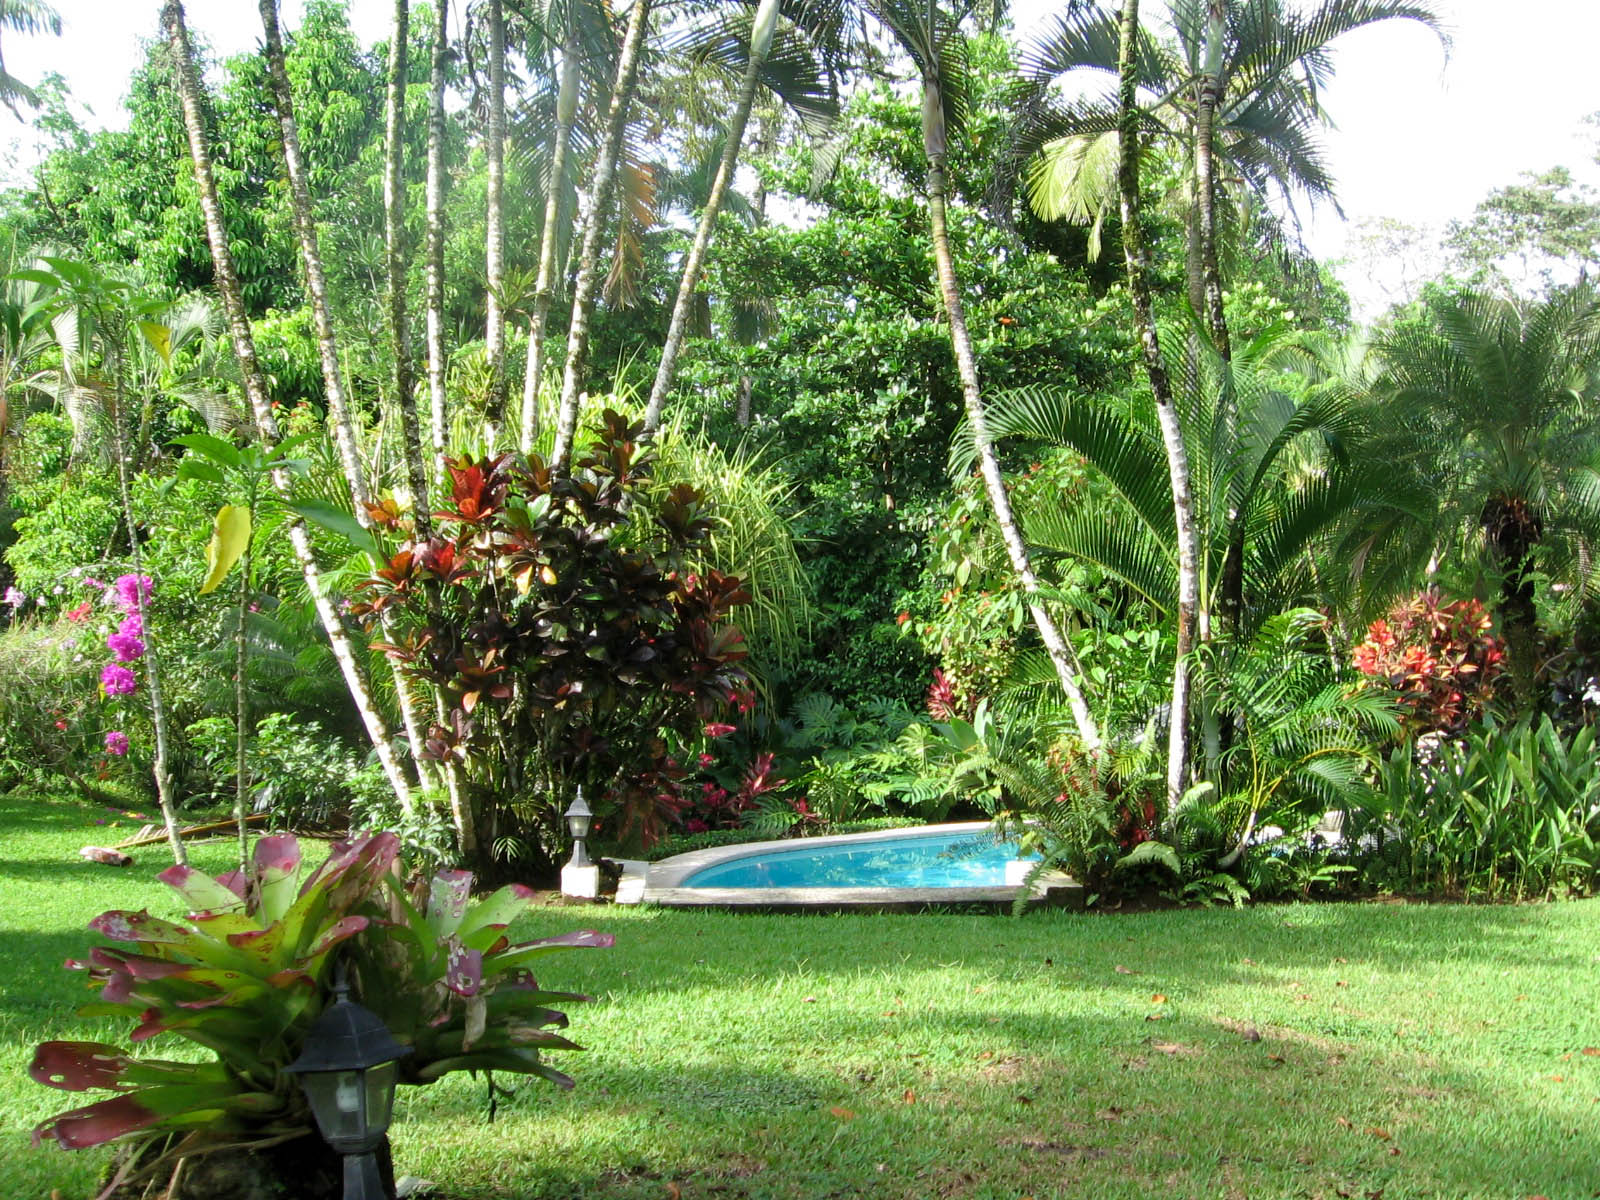 Tropical Dream Trek 7 Days Rediscover Your Passion For Life